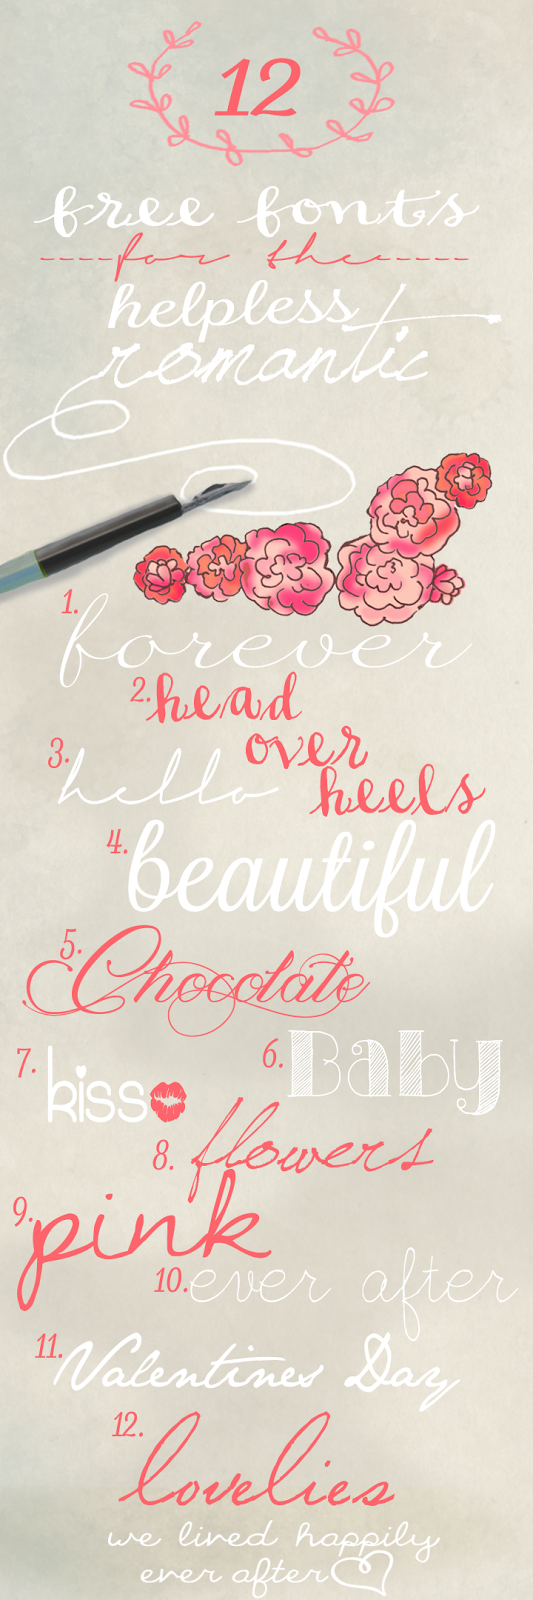 http://1.bp.blogspot.com/-Wg5VFKodEZU/UuW1yfIr9sI/AAAAAAAARJE/YbOFTWhcloE/s1600/Free+Valentine's+Day+Fonts++Fonts+for+the+Helpless+Romantic.png